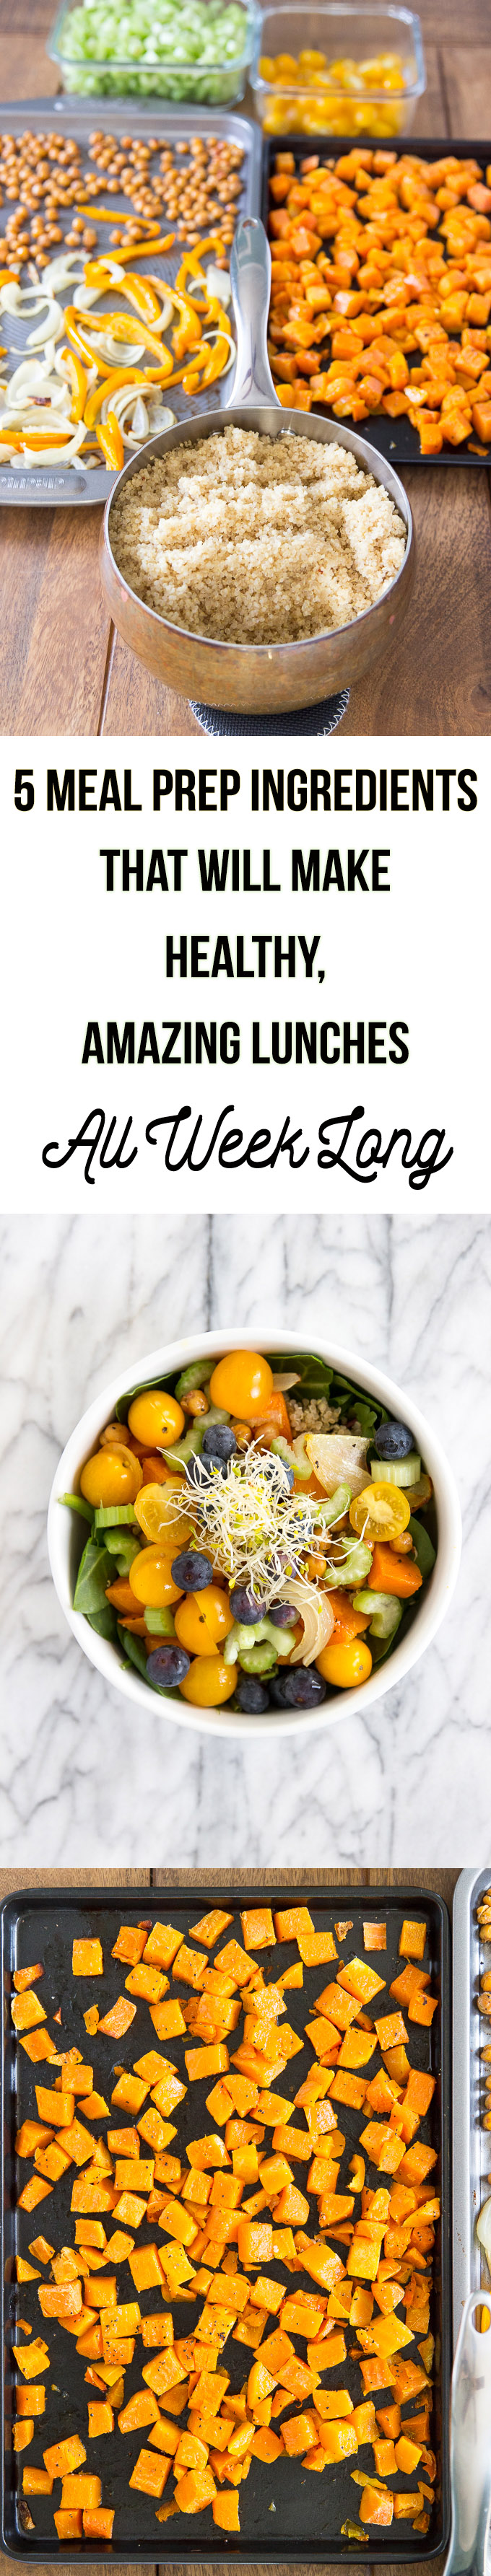 5 Meal Prep Ingredients that will make Healthy, Amazing lunches all week long in just 30 minutes! #mealprep #healthylunches